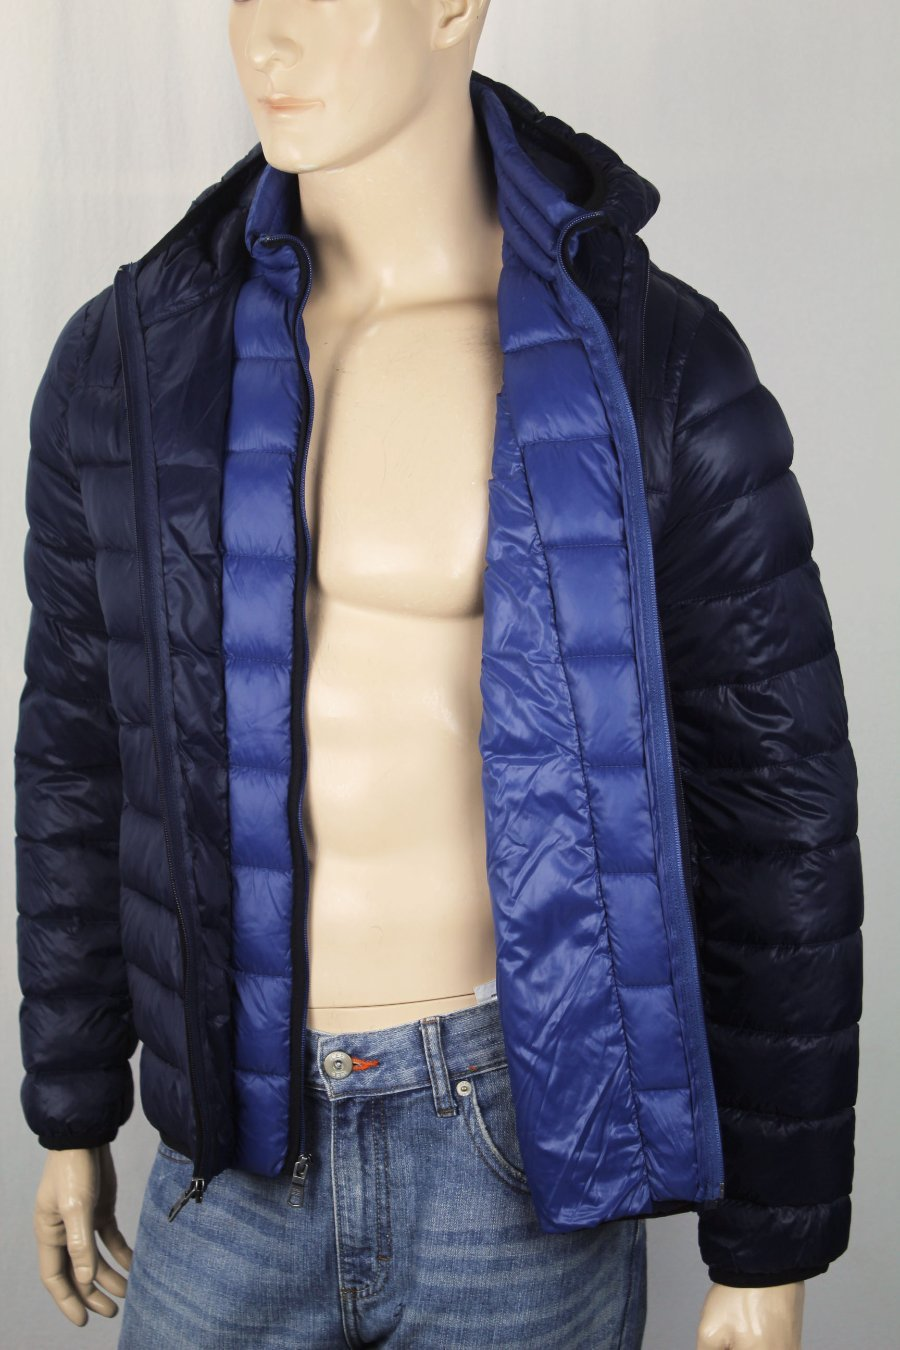 Details about Tommy Hilfiger Navy Blue Packable Hooded Ultra Loft Ski Puffer Coat NWT $195